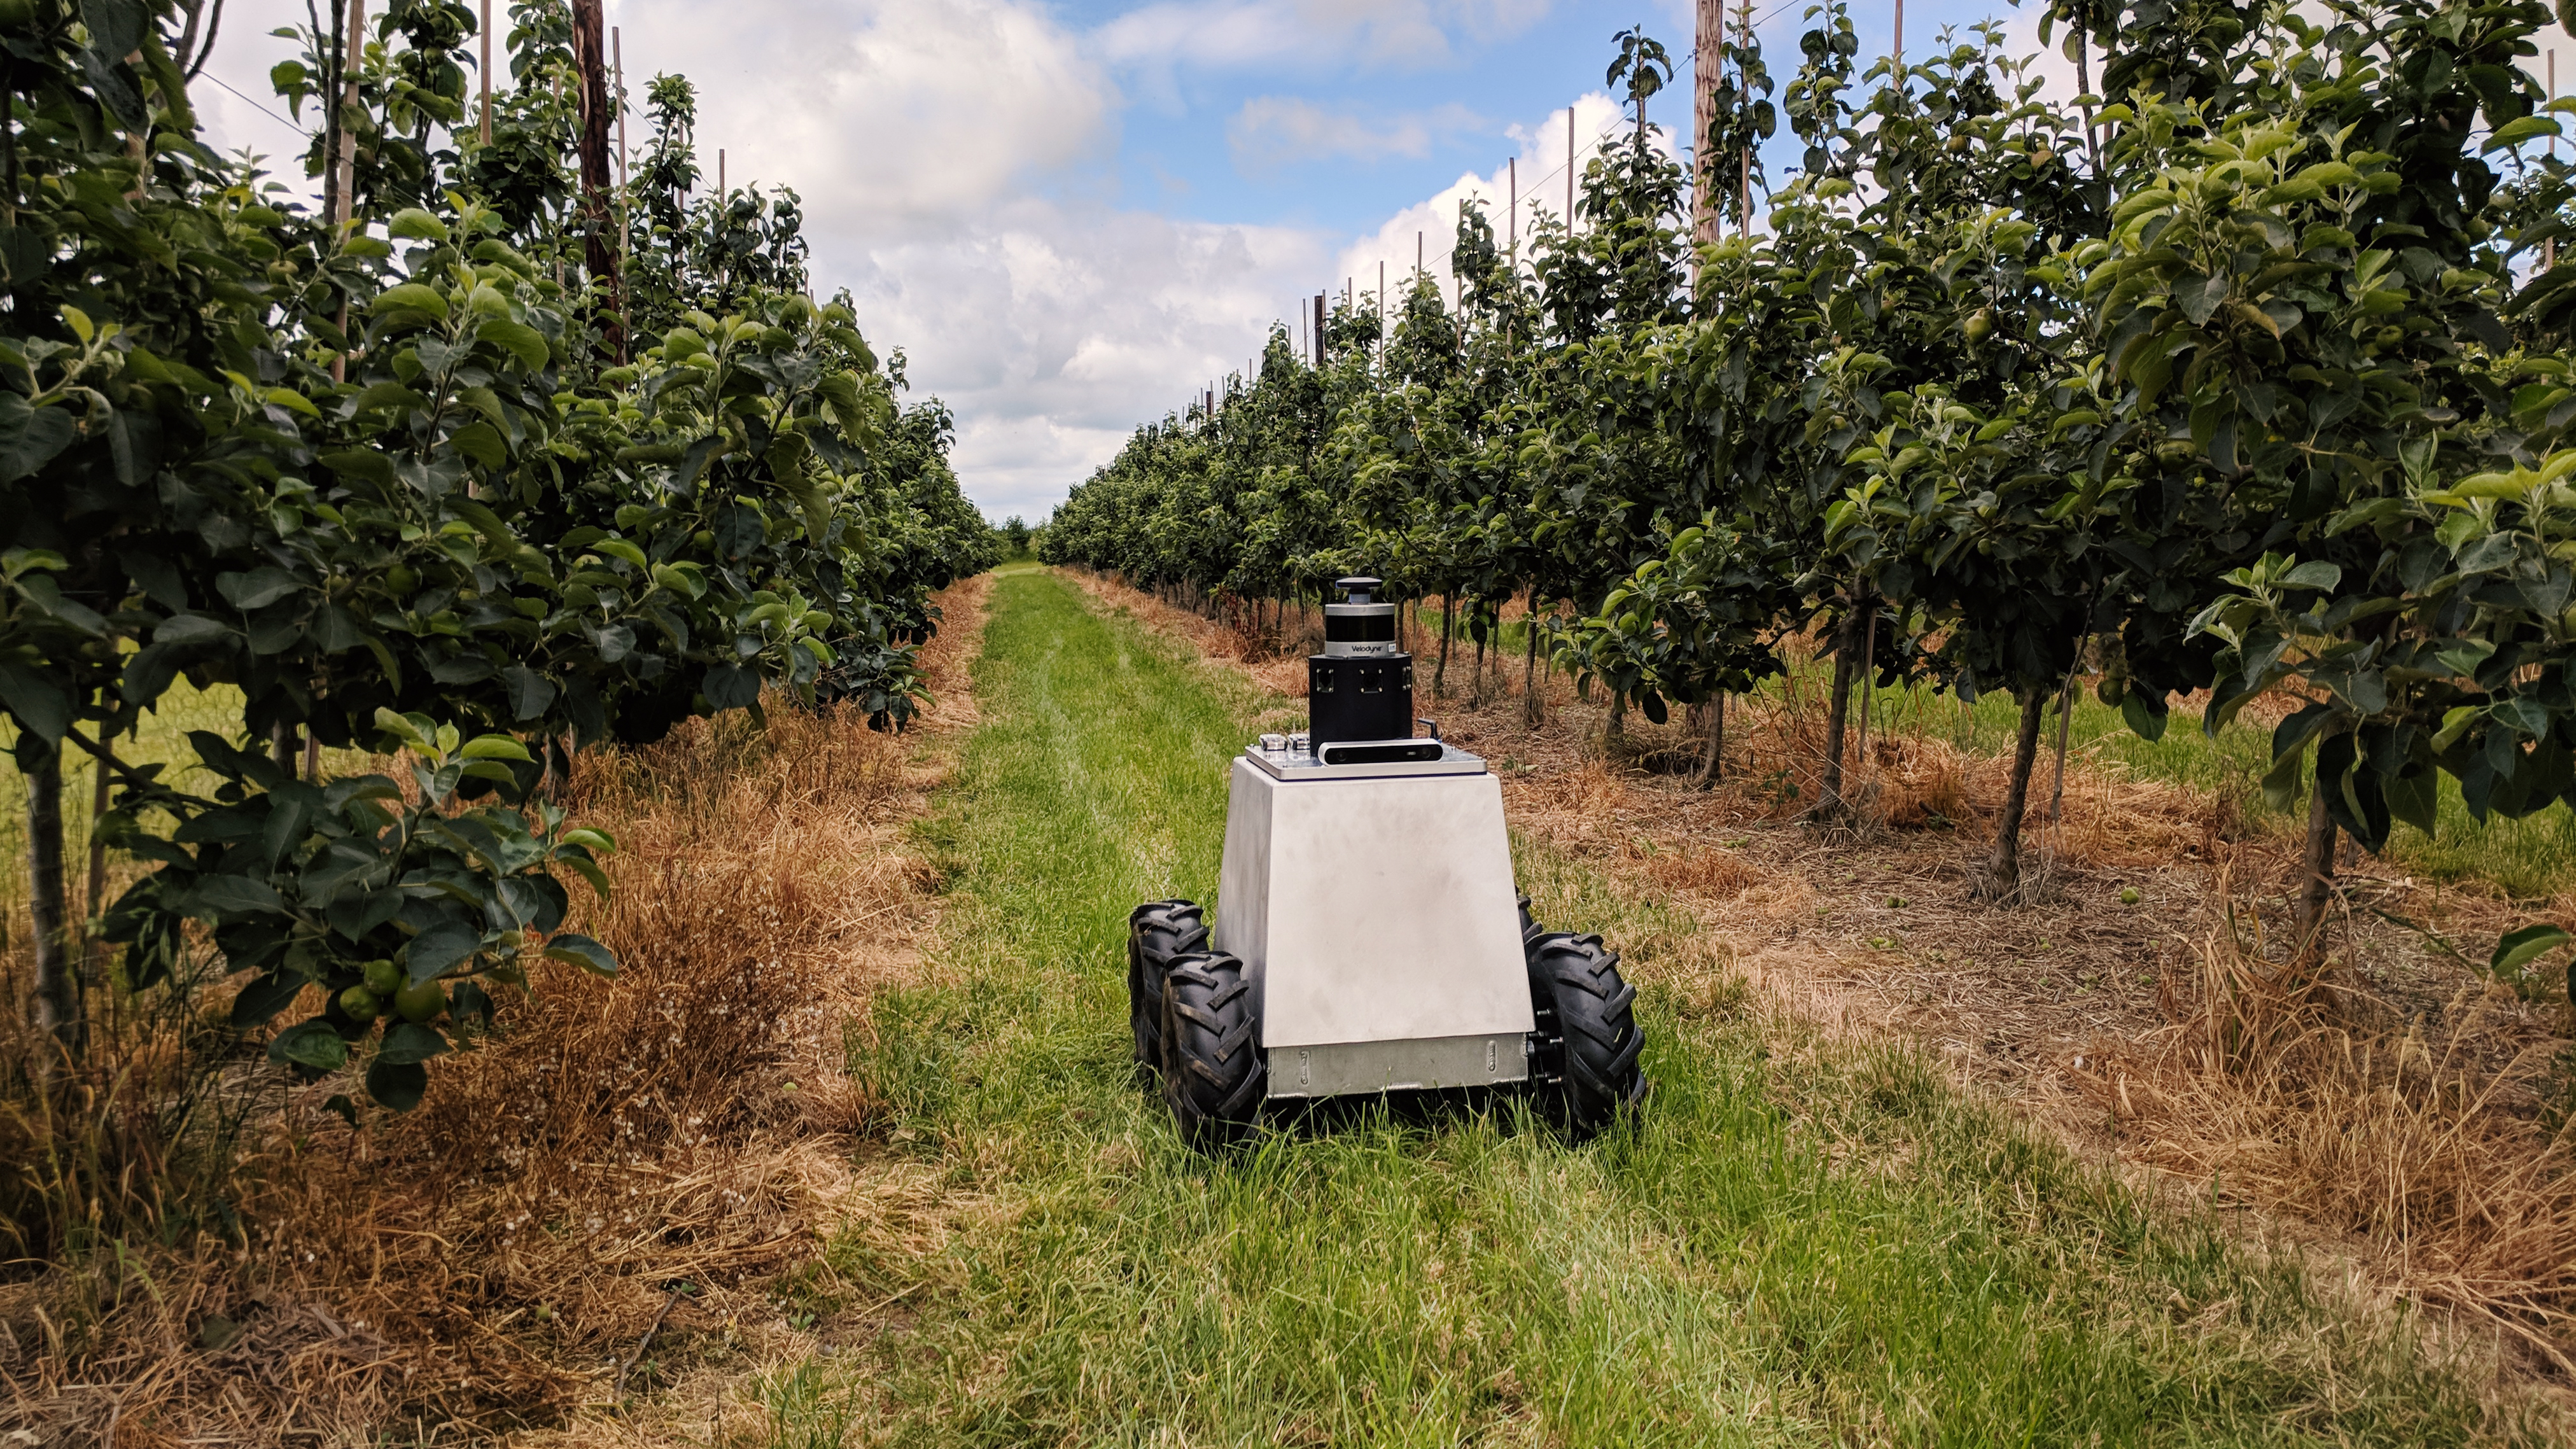 Medium distance photo of the Mamut robot travelling along a path between rows of tall crops demonstrating its use in agriculture